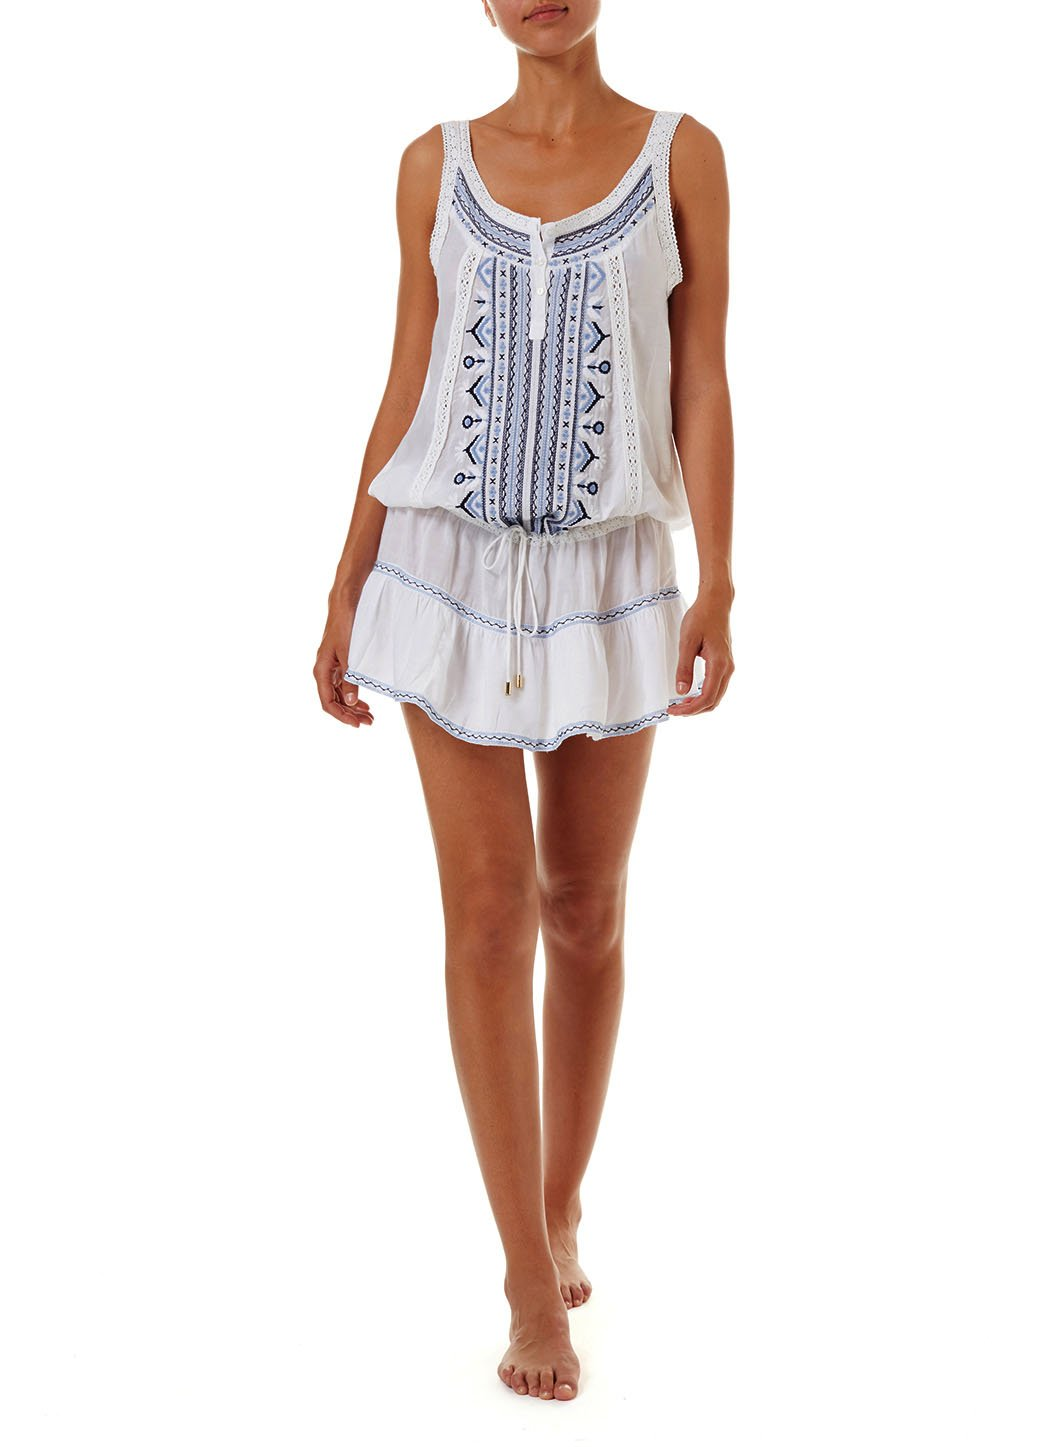 jaz white navy embroidered overtheshoulder short beach dress 2019 F